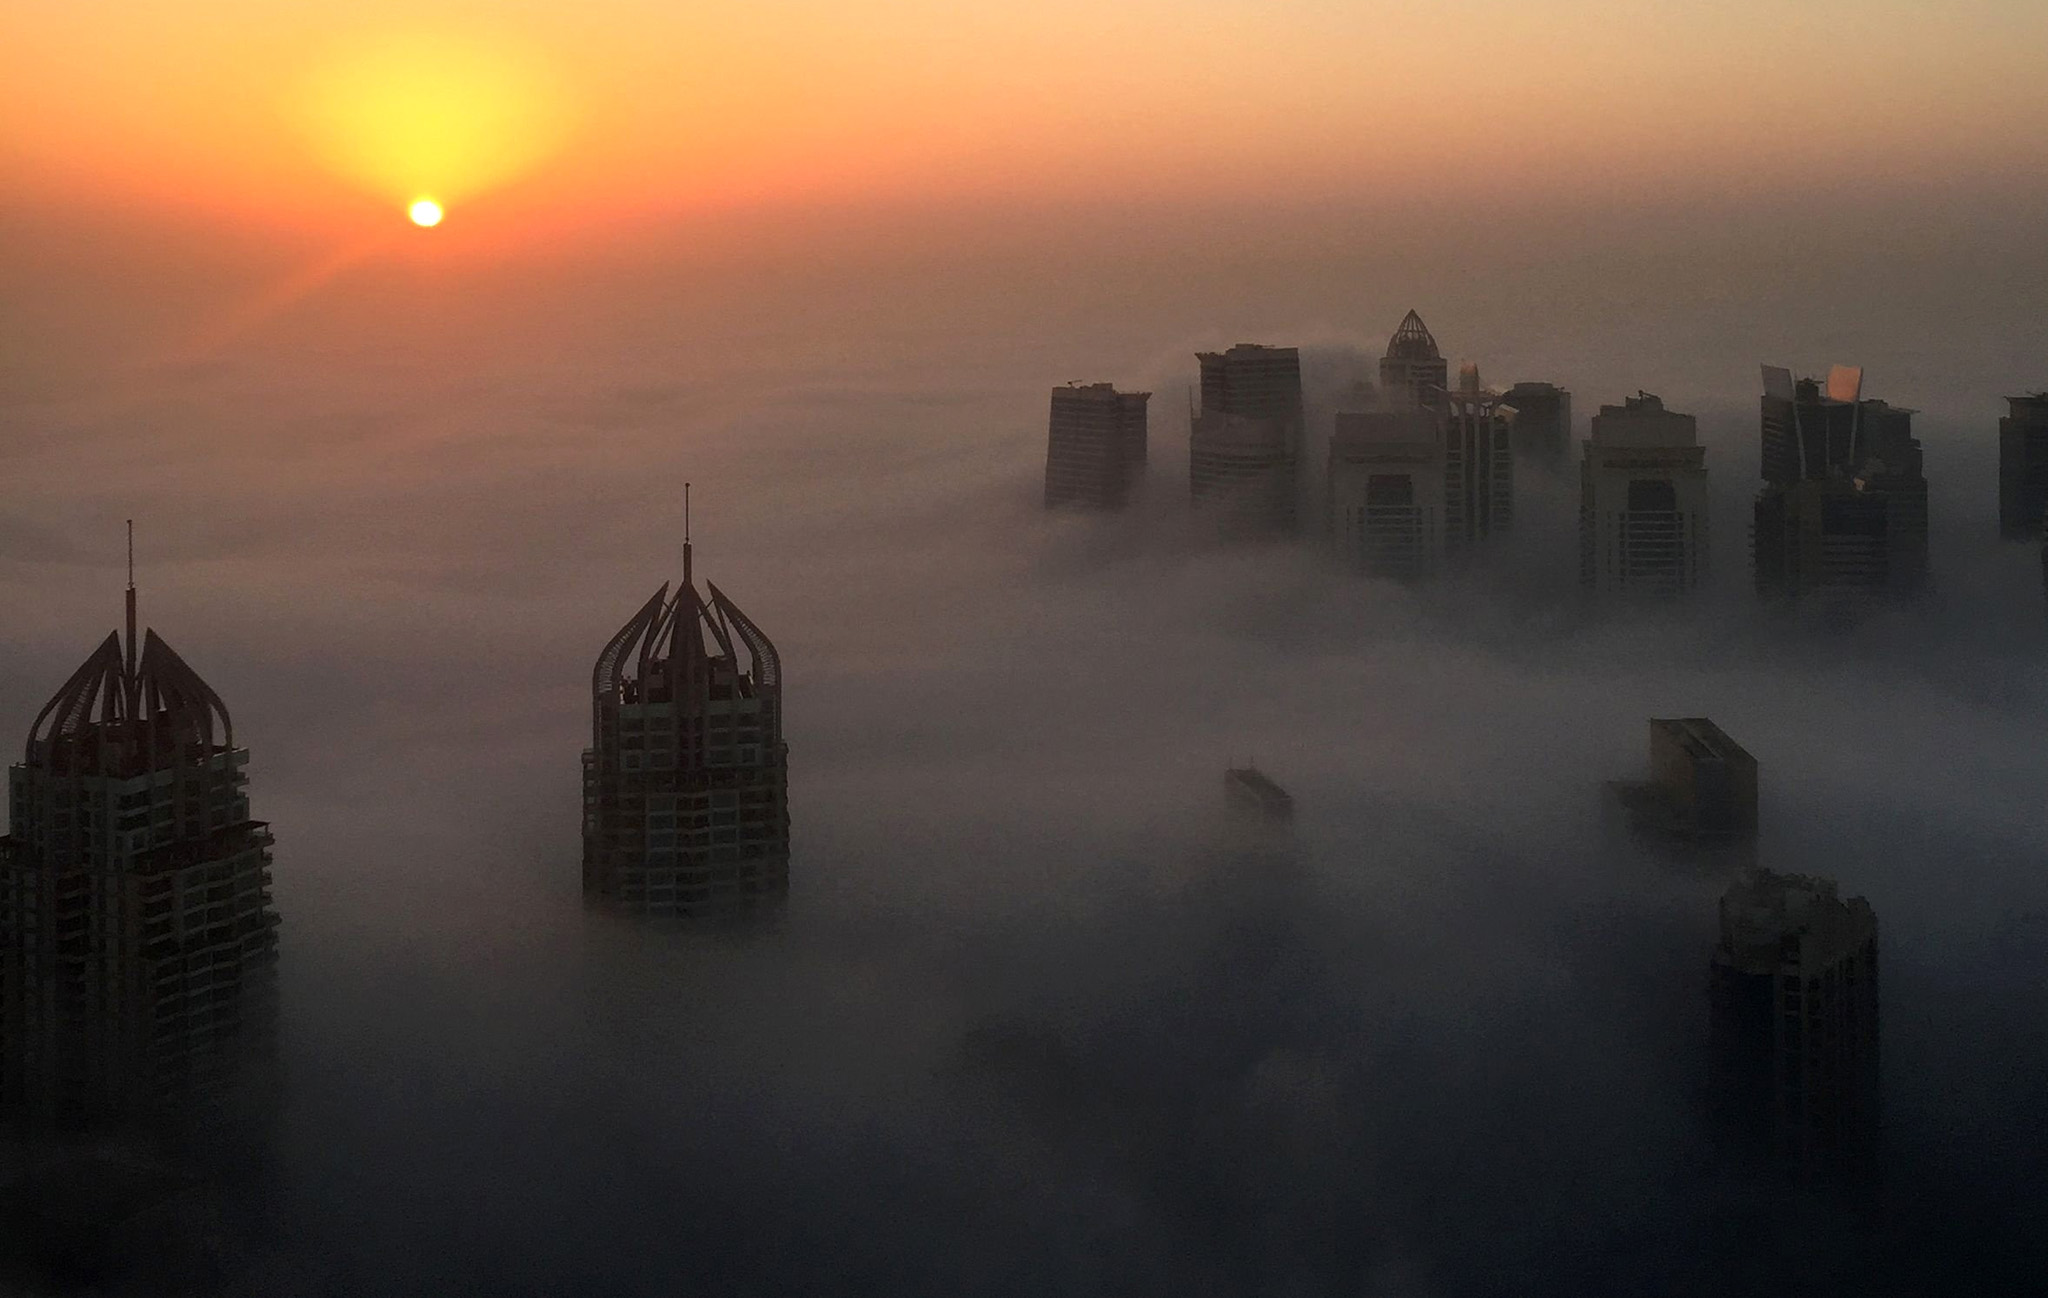 The sun rises behind skyscrapers amidst the clouds on a foggy morning in Dubai on December 5, 2016.